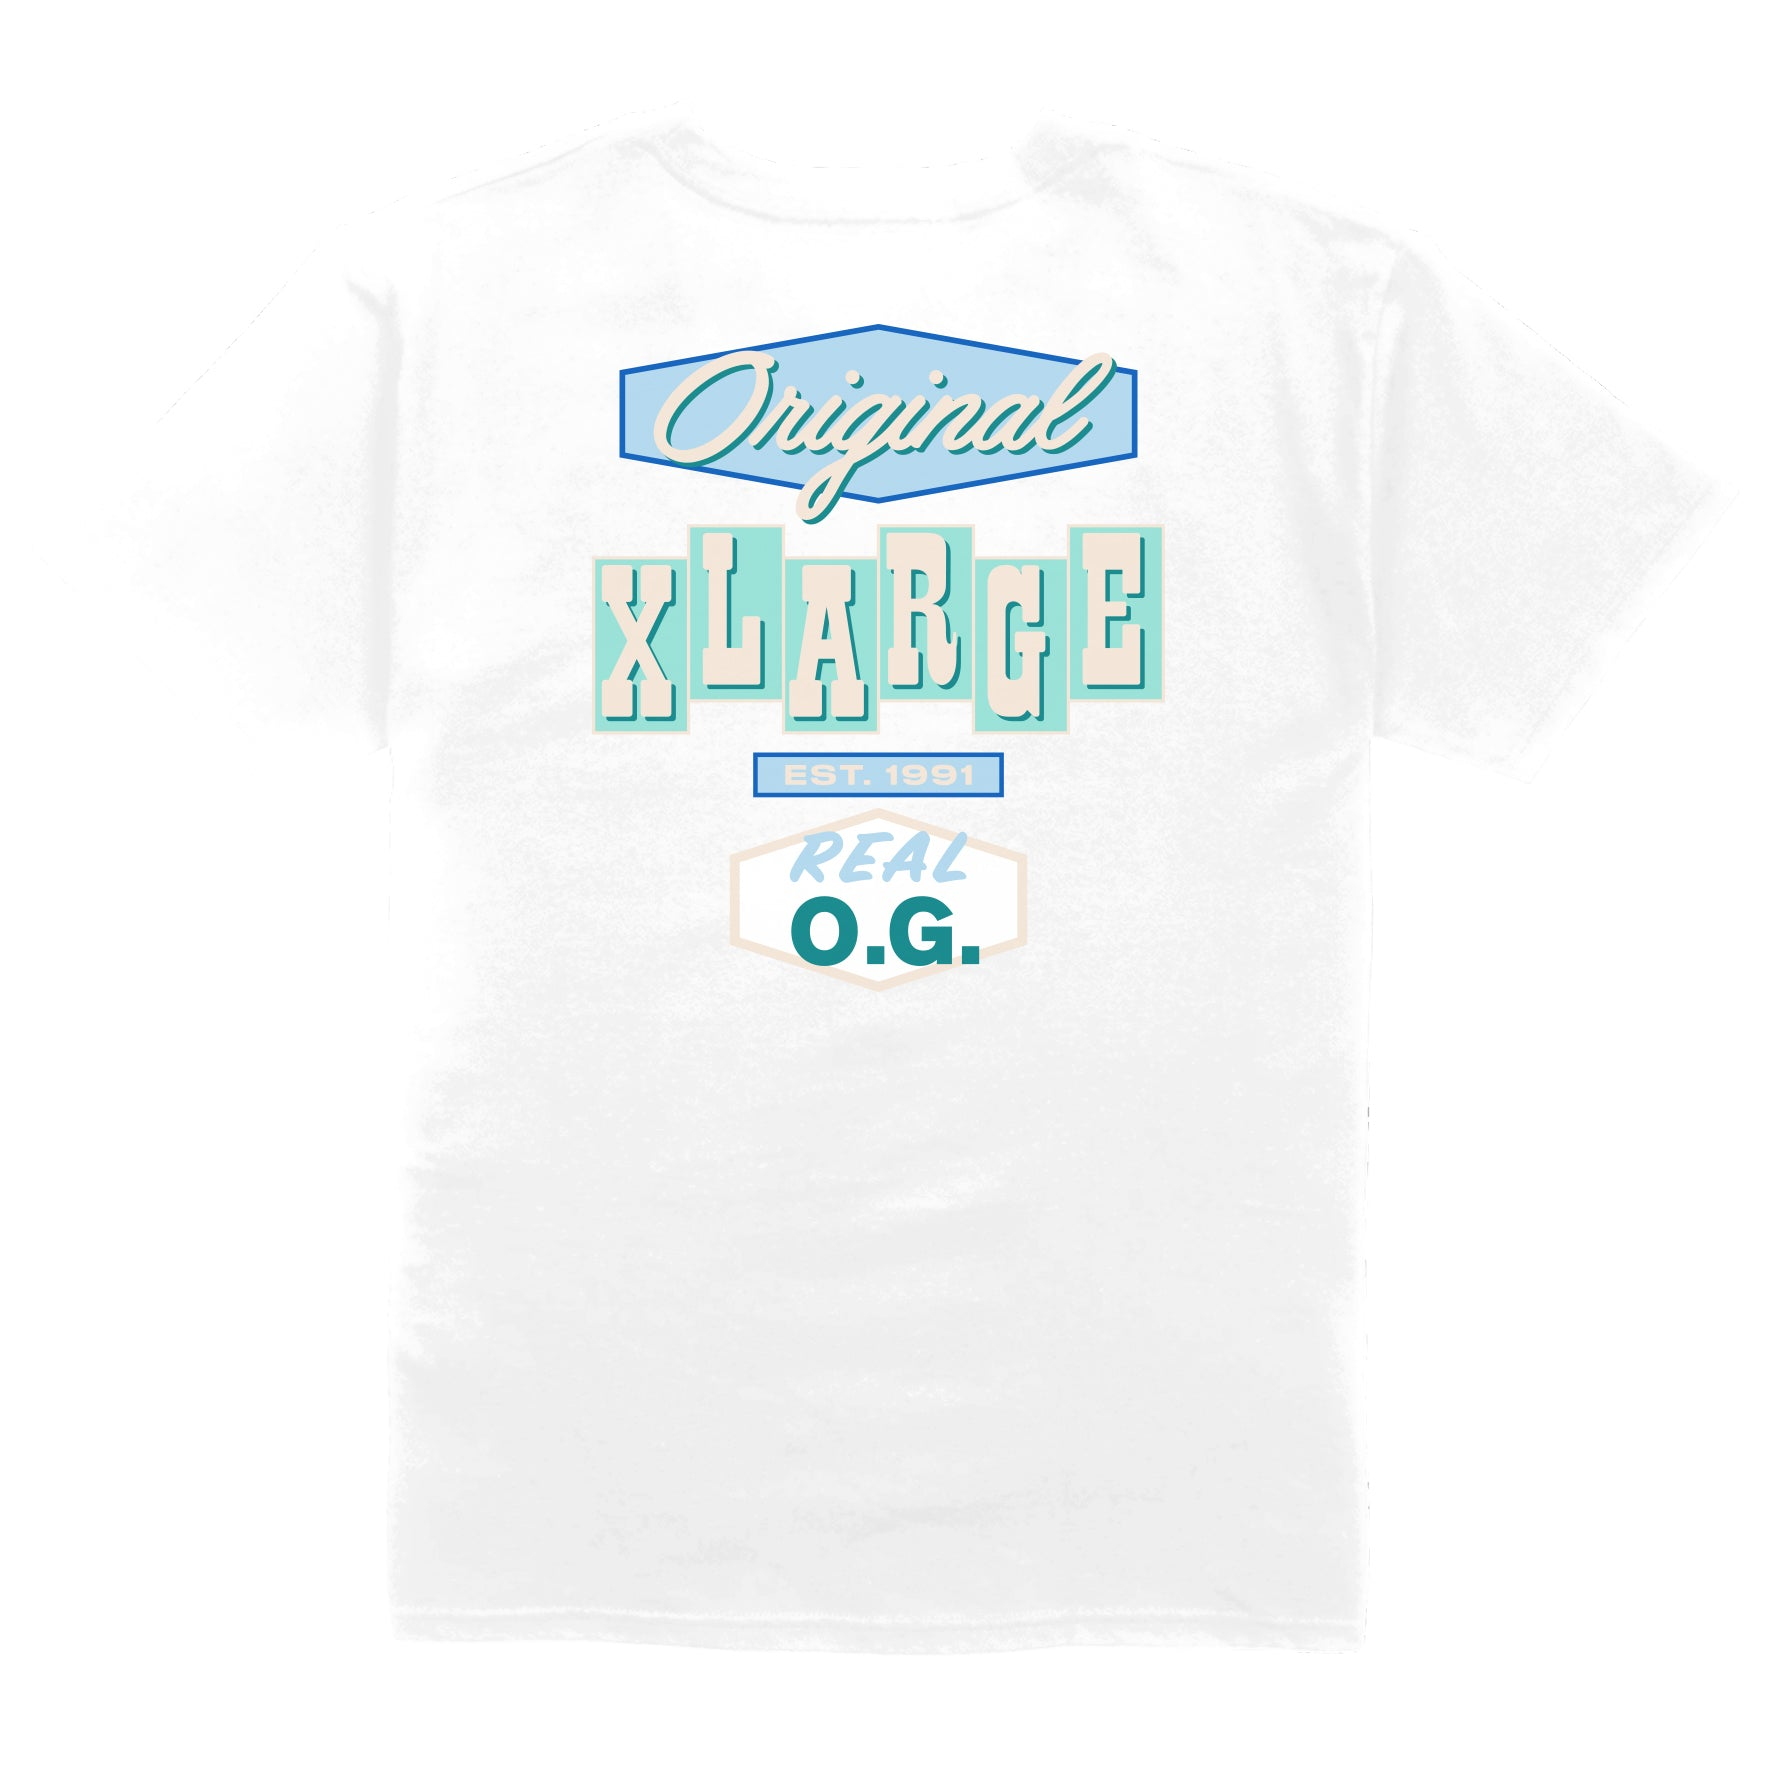 75e26a9ea1cbe3 https   xlarge.com  daily https   xlarge.com products old-og-ss-tee 2019 ...